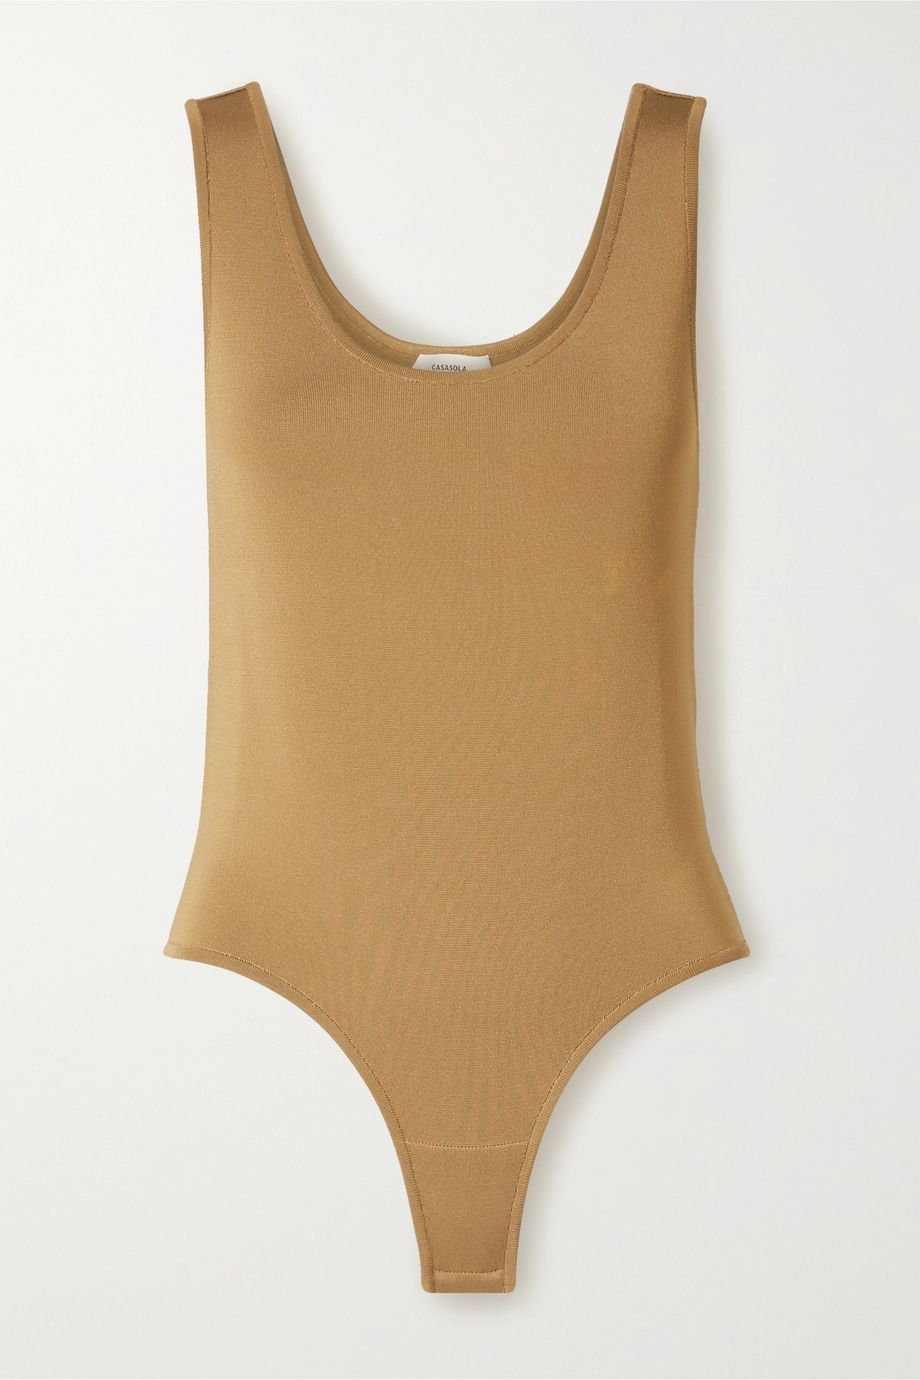 CASASOLA Stretch-knit thong bodysuit